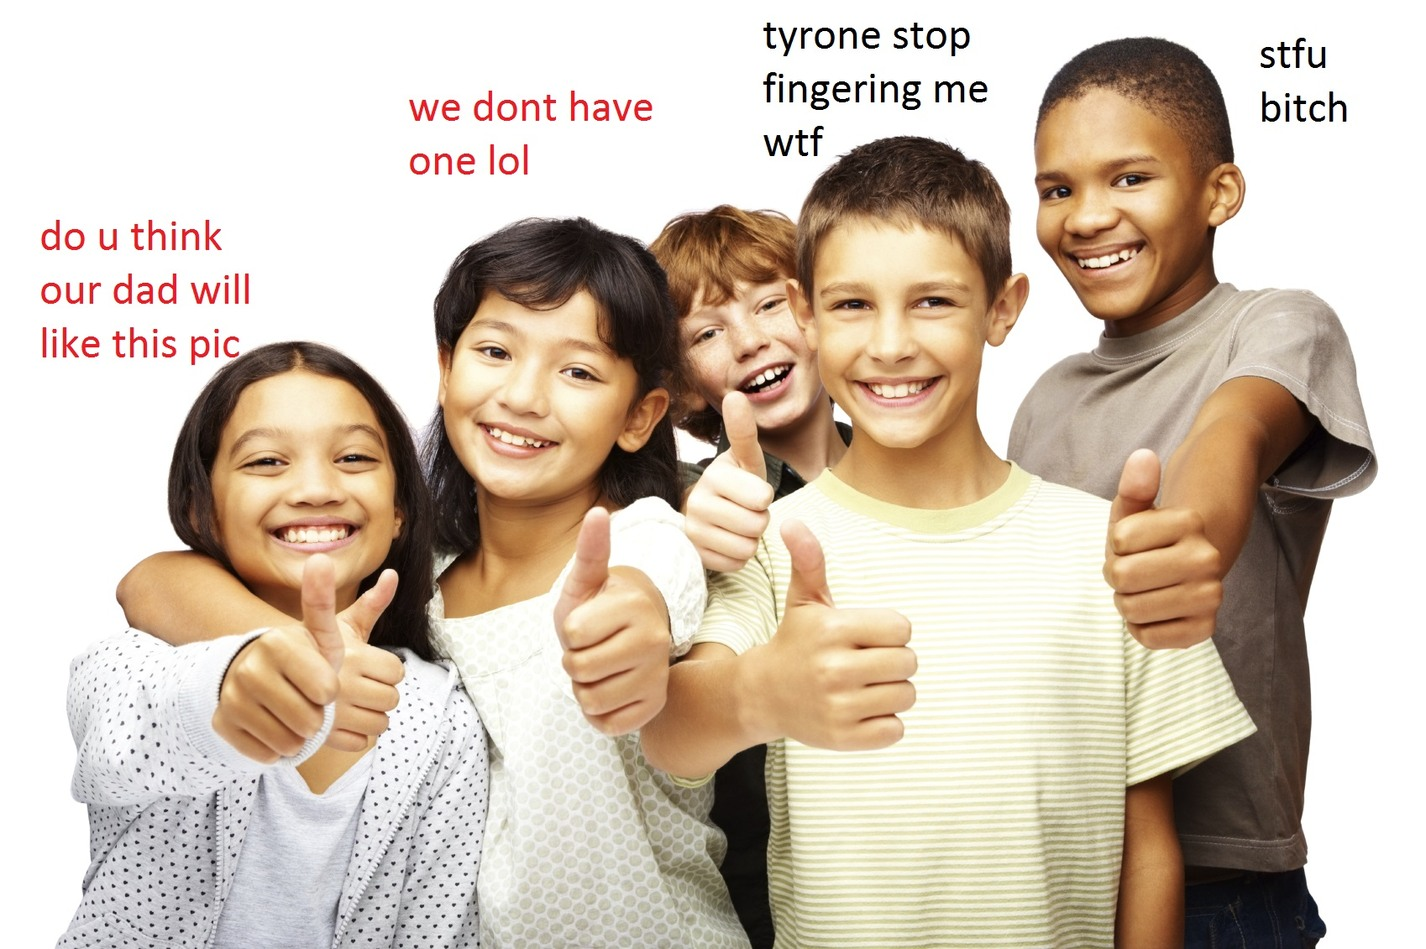 that's not very nice, tyrone - meme